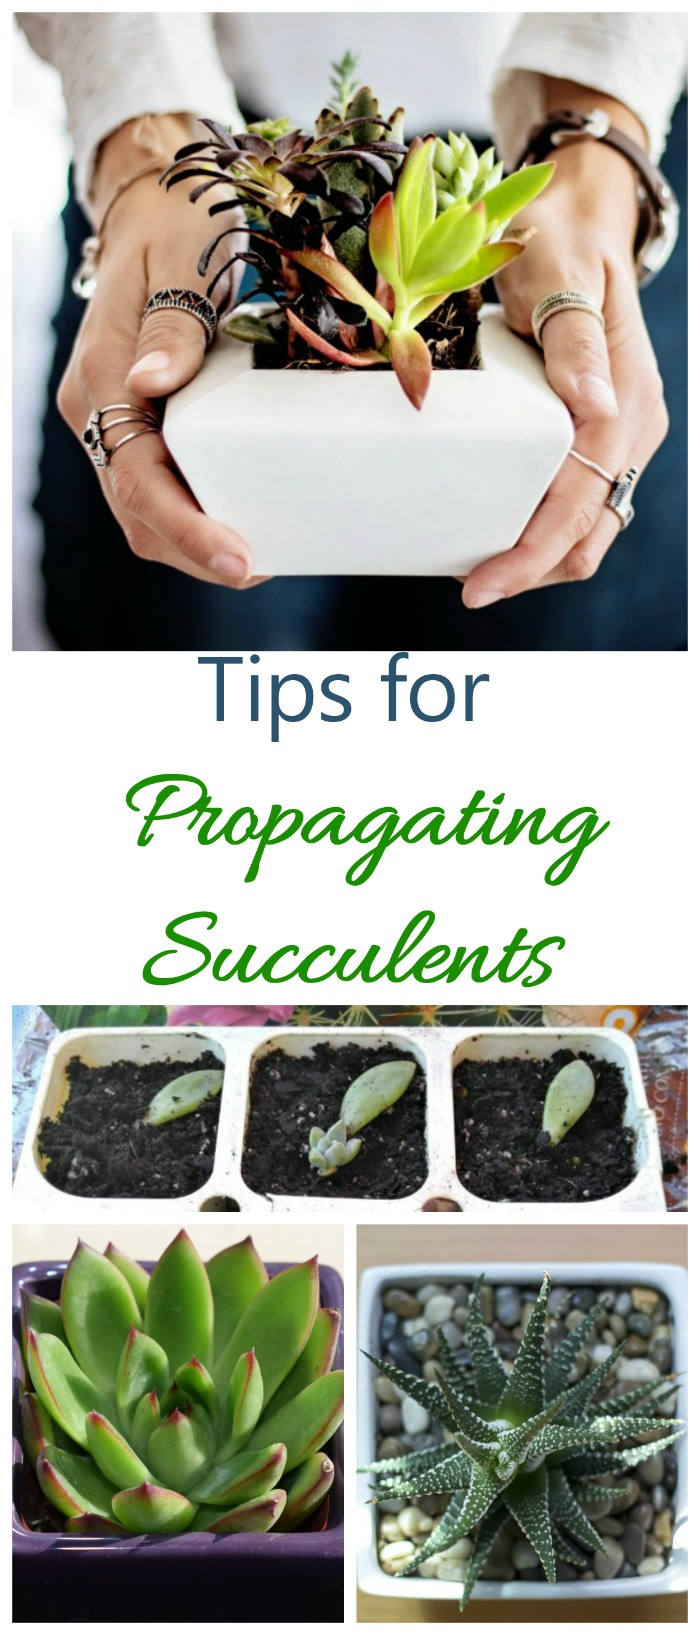 These Tips for propagating succulents will give you new plants for free in just weeks.